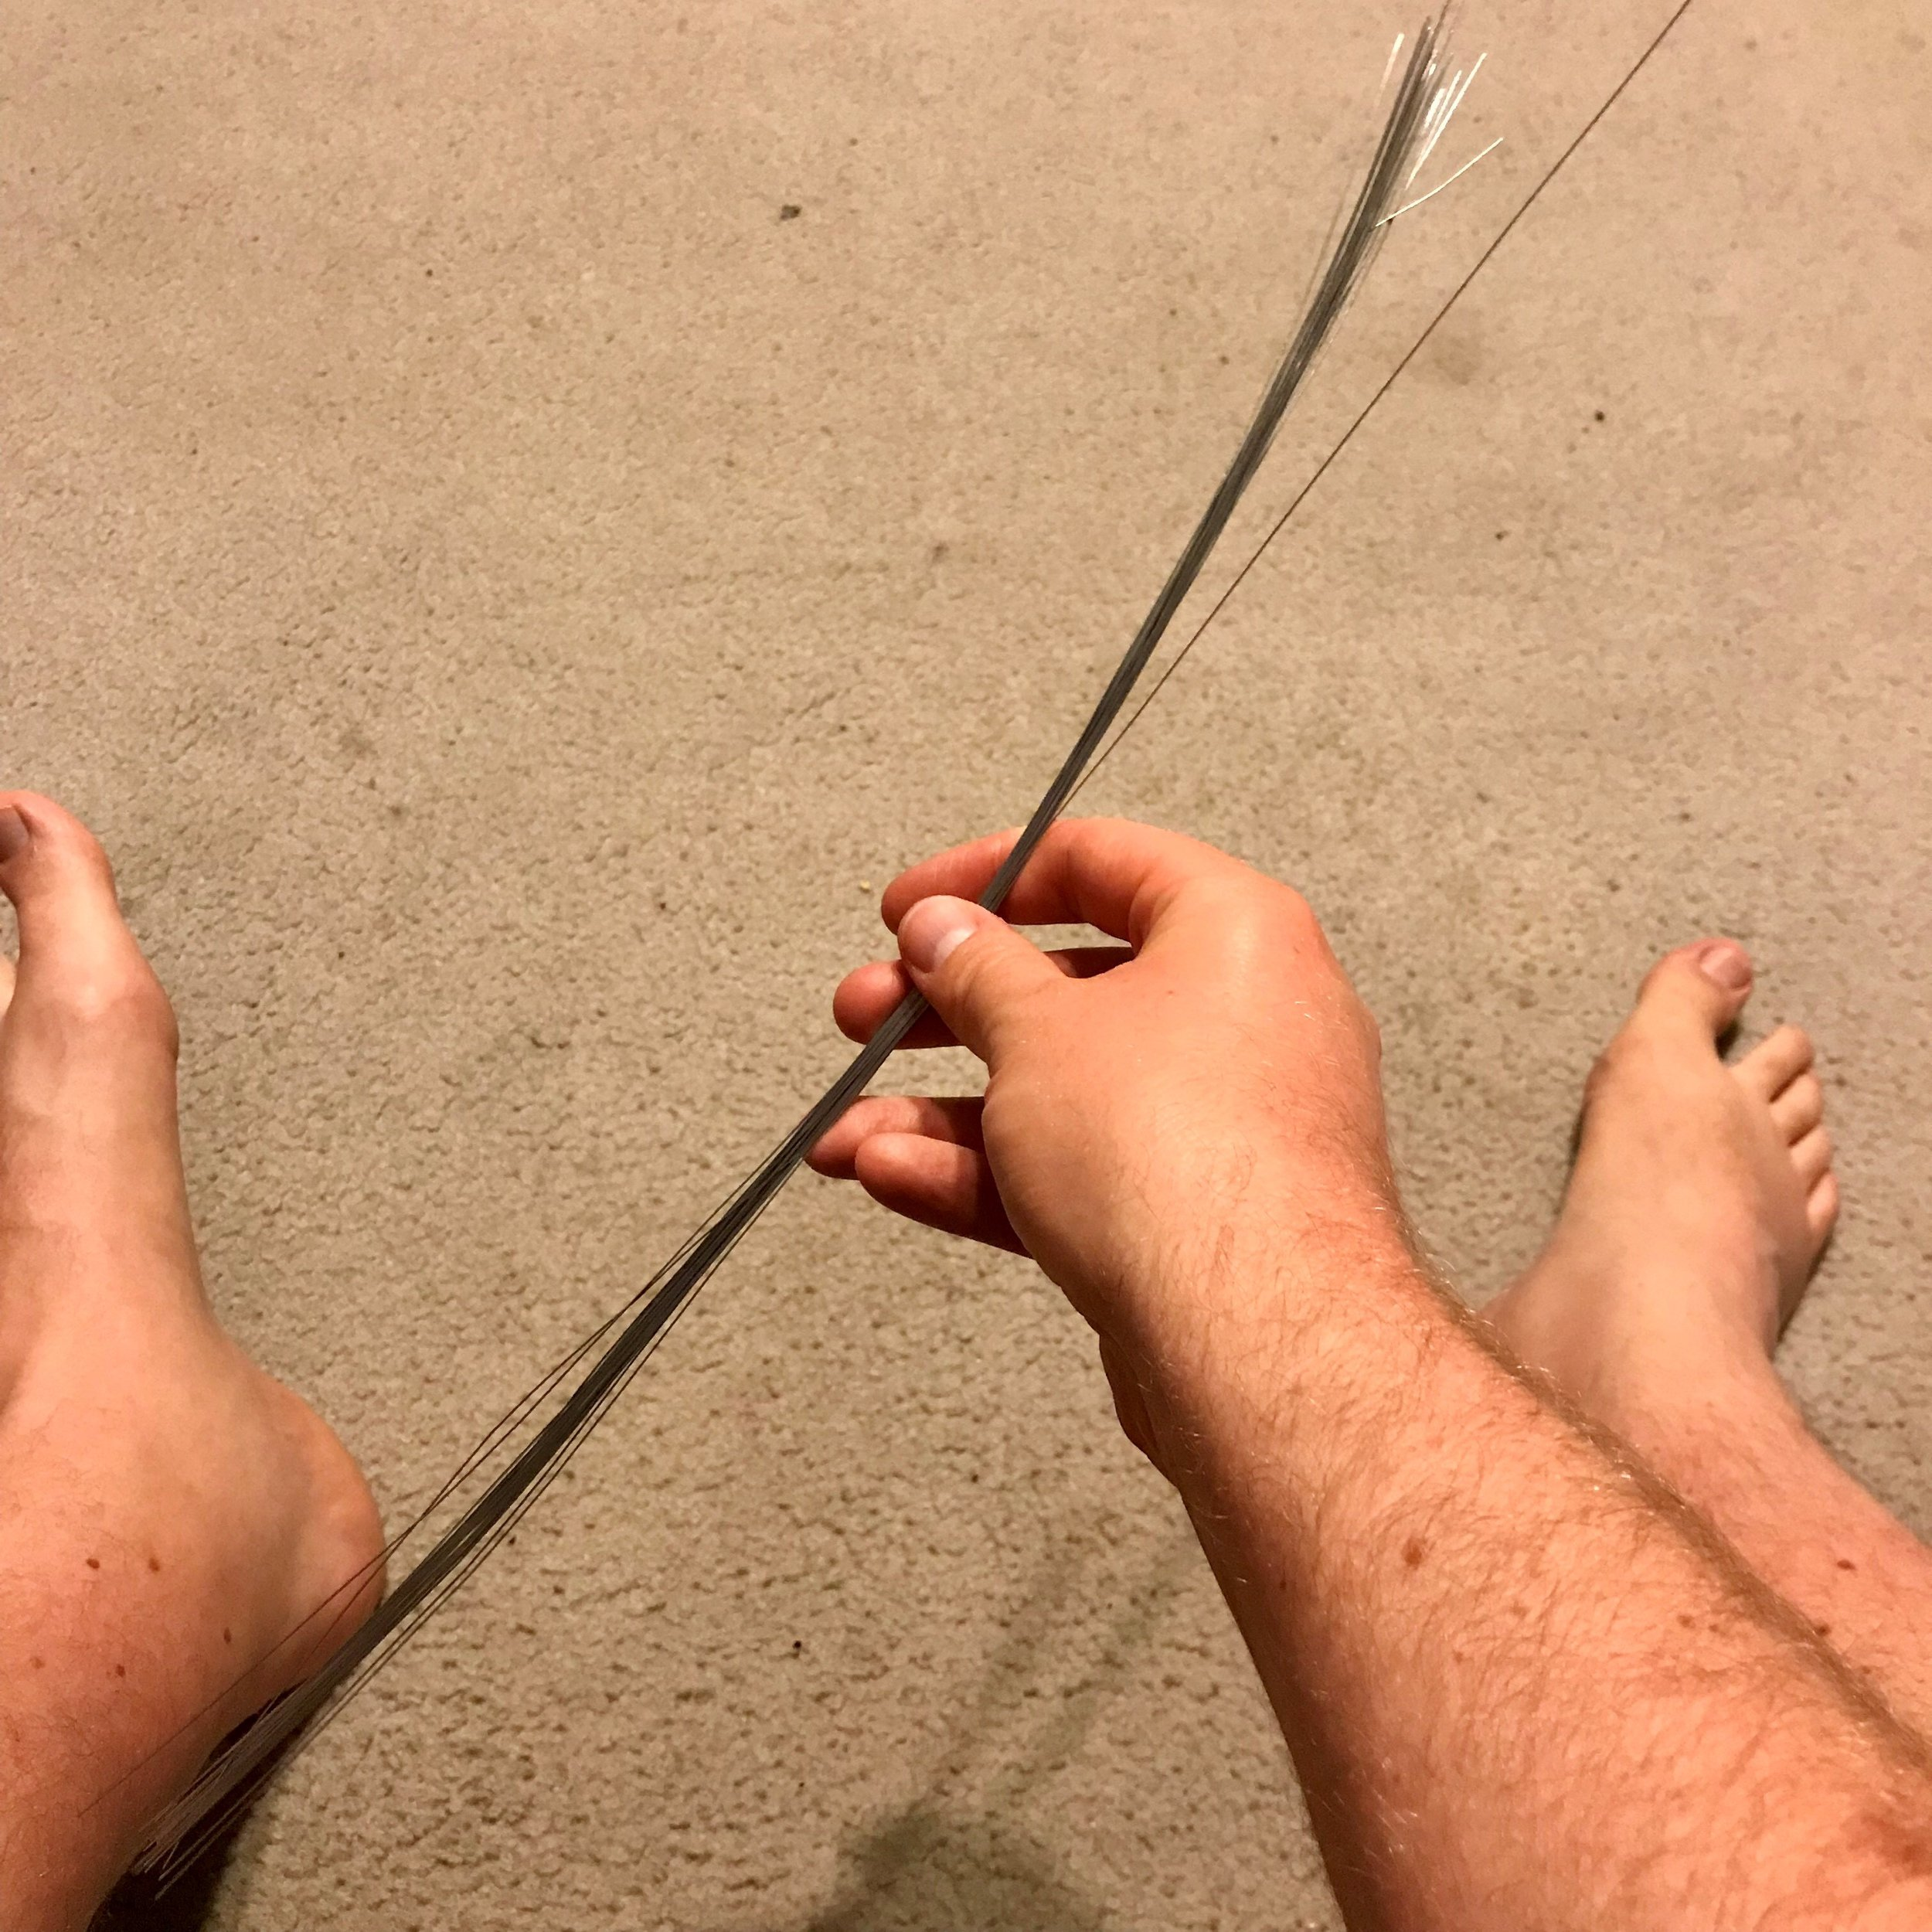 Step 1: Sorry for the feet pic. I use approximately 30 strands of florist wire. I buy them in packs from a $2 shop. Grab the bundle in the middle